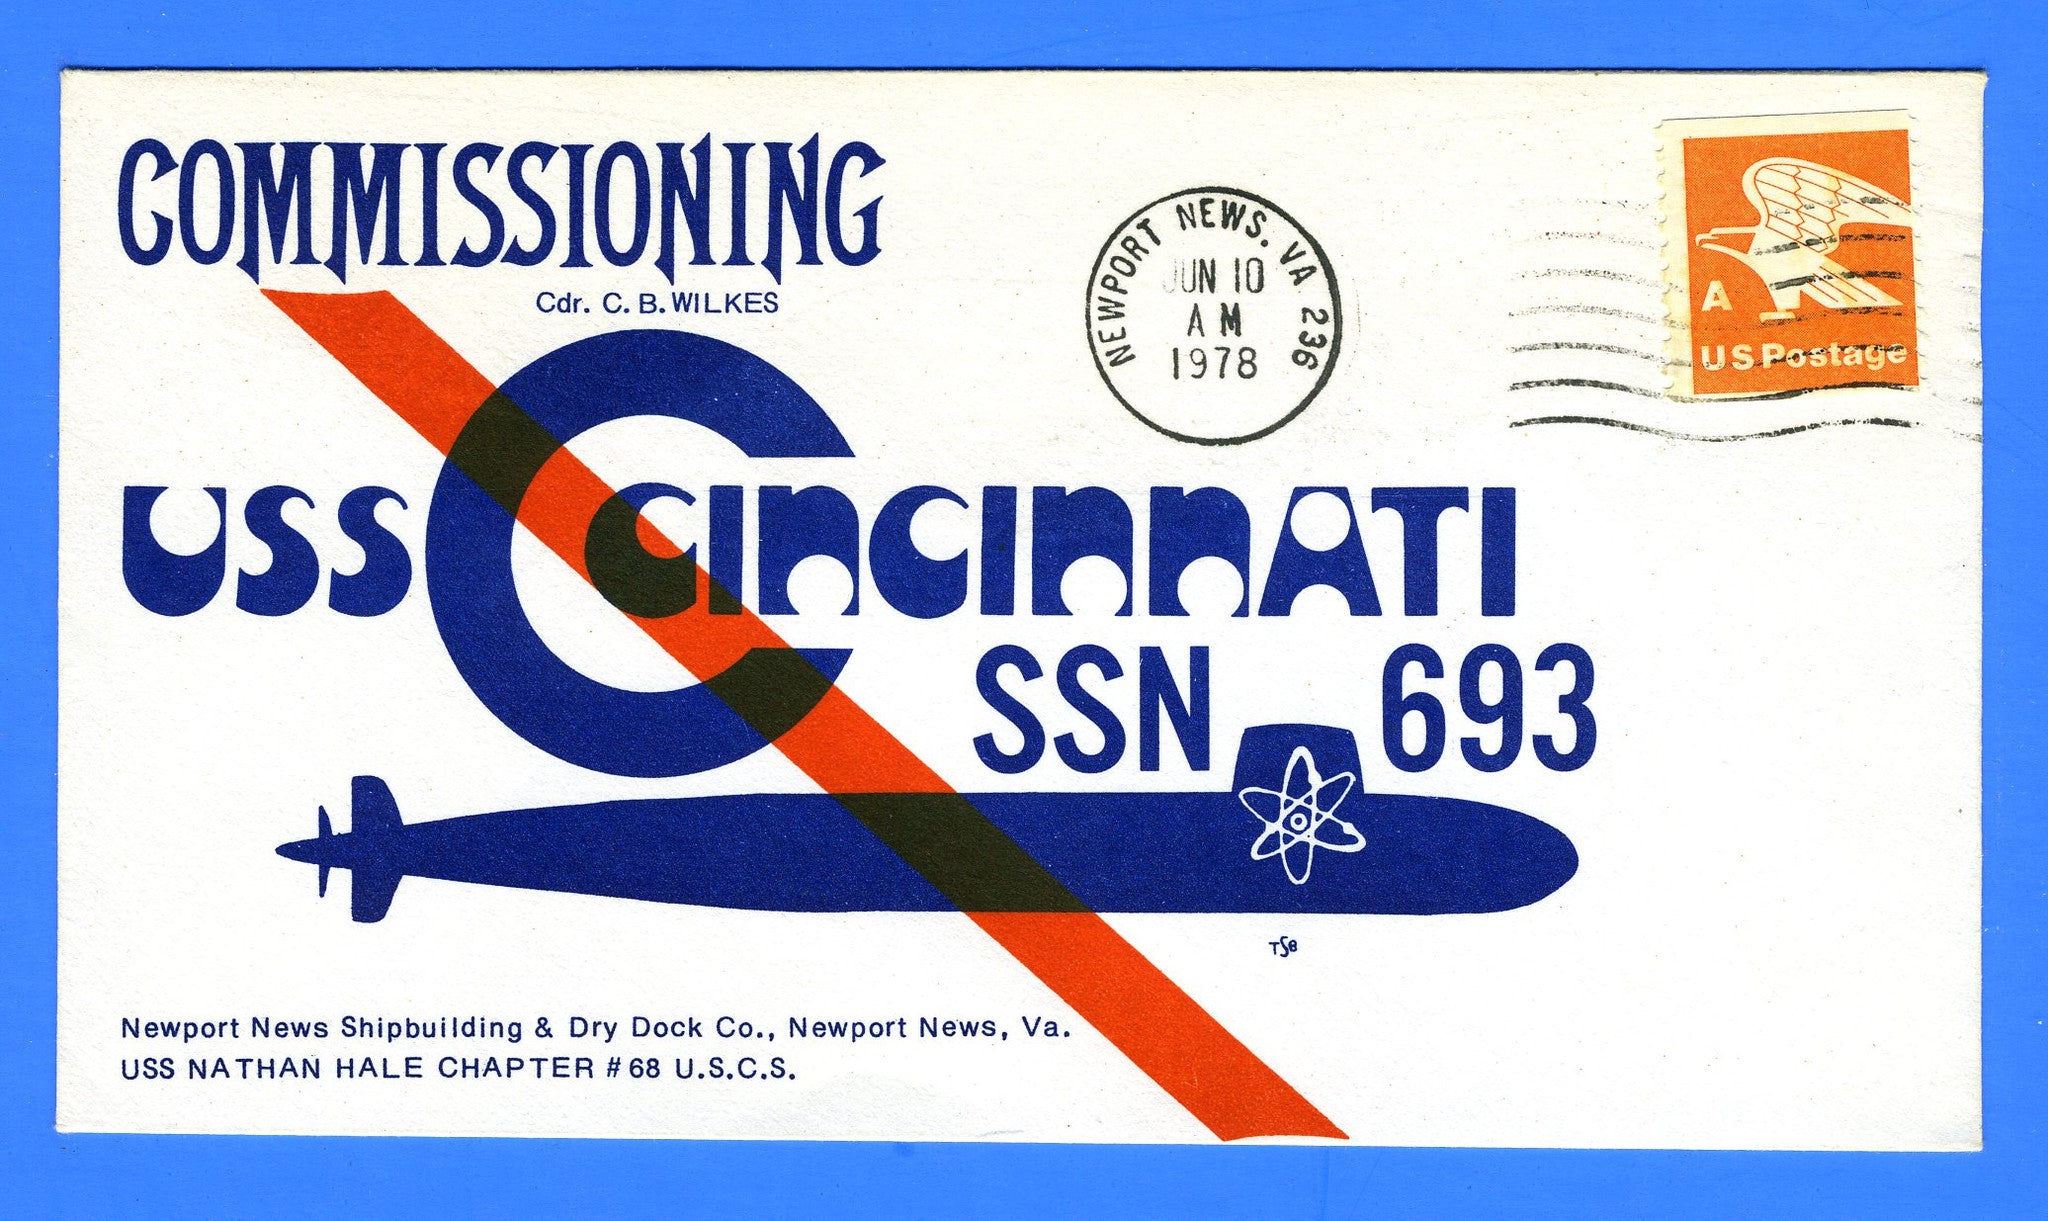 USS Cincinnati SSN-693 Commissioning June 10, 1978